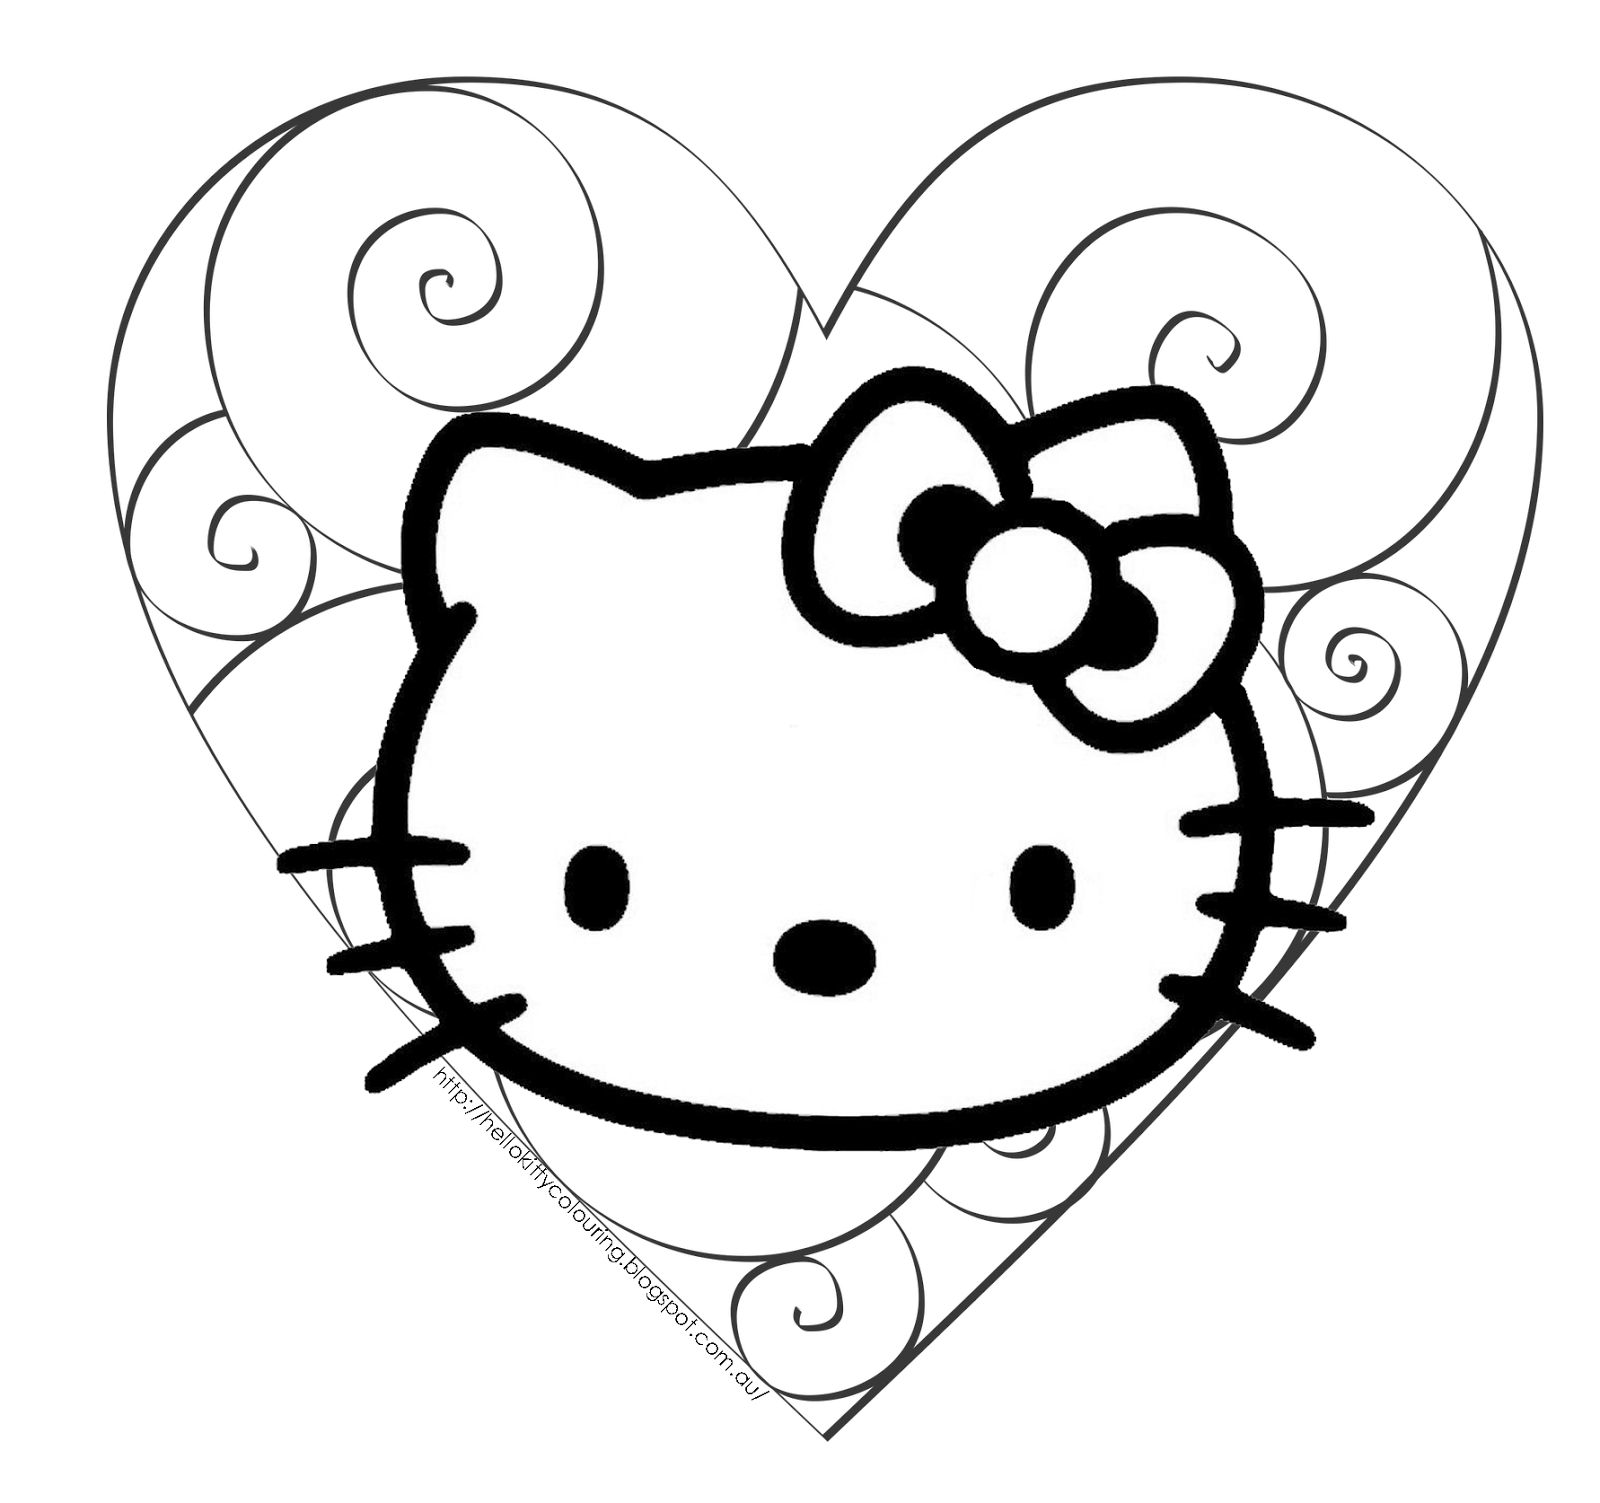 coloring pages hello kitty hello kitty coloring pages coloring hello kitty pages